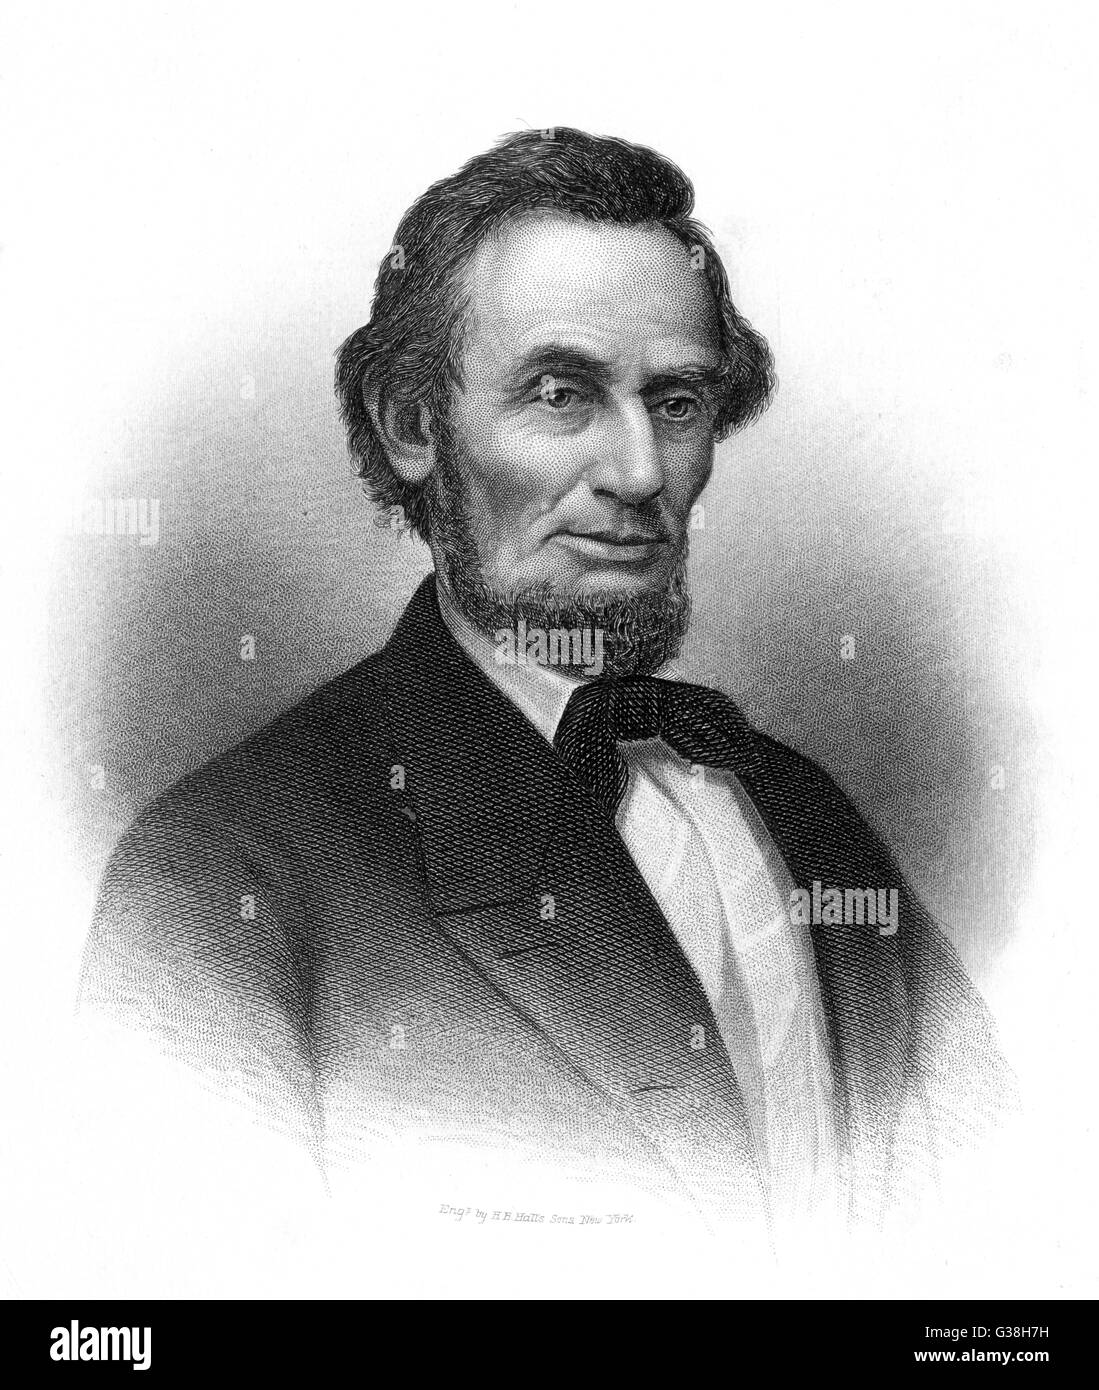 ABRAHAM LINCOLN (1809 - 1865) U.S. President - Stock Image